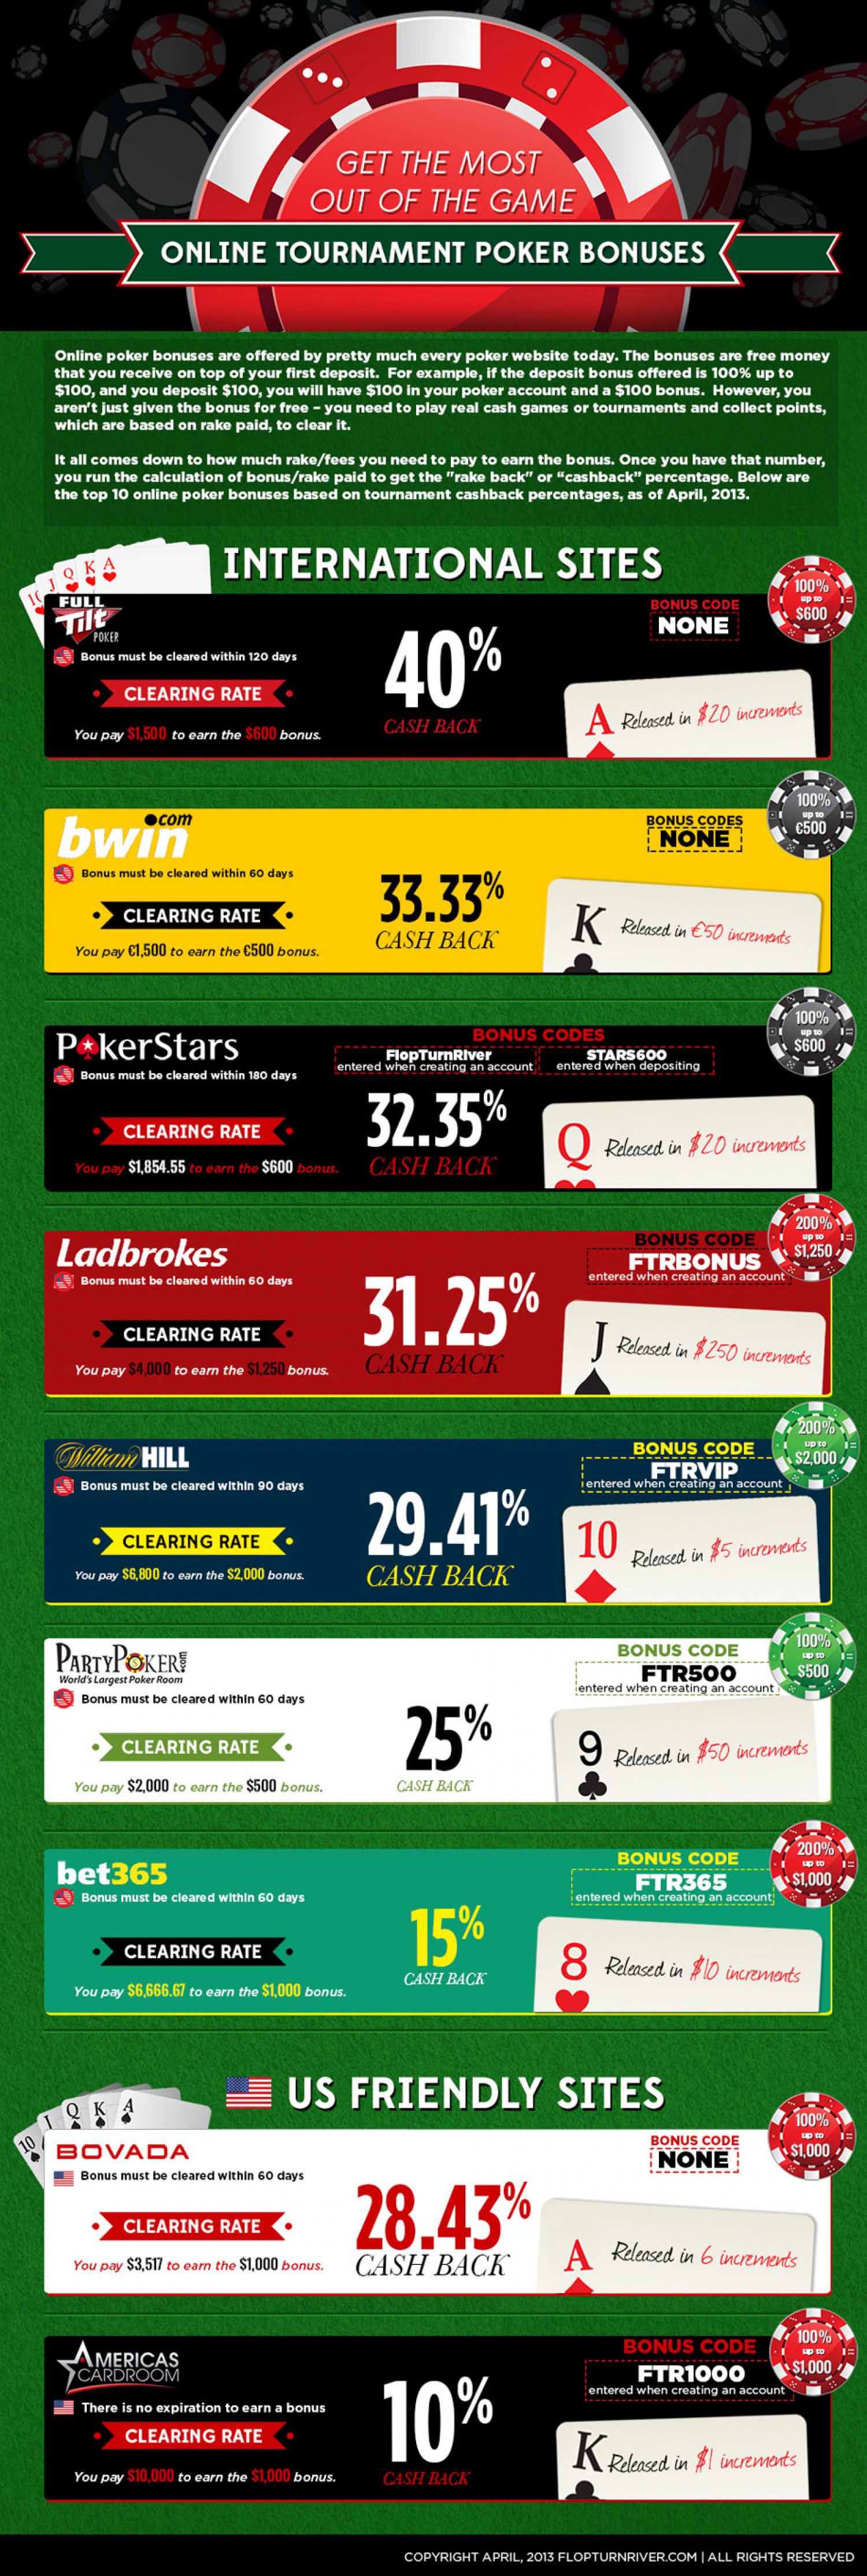 Online Poker Tournament Bonuses Infographic